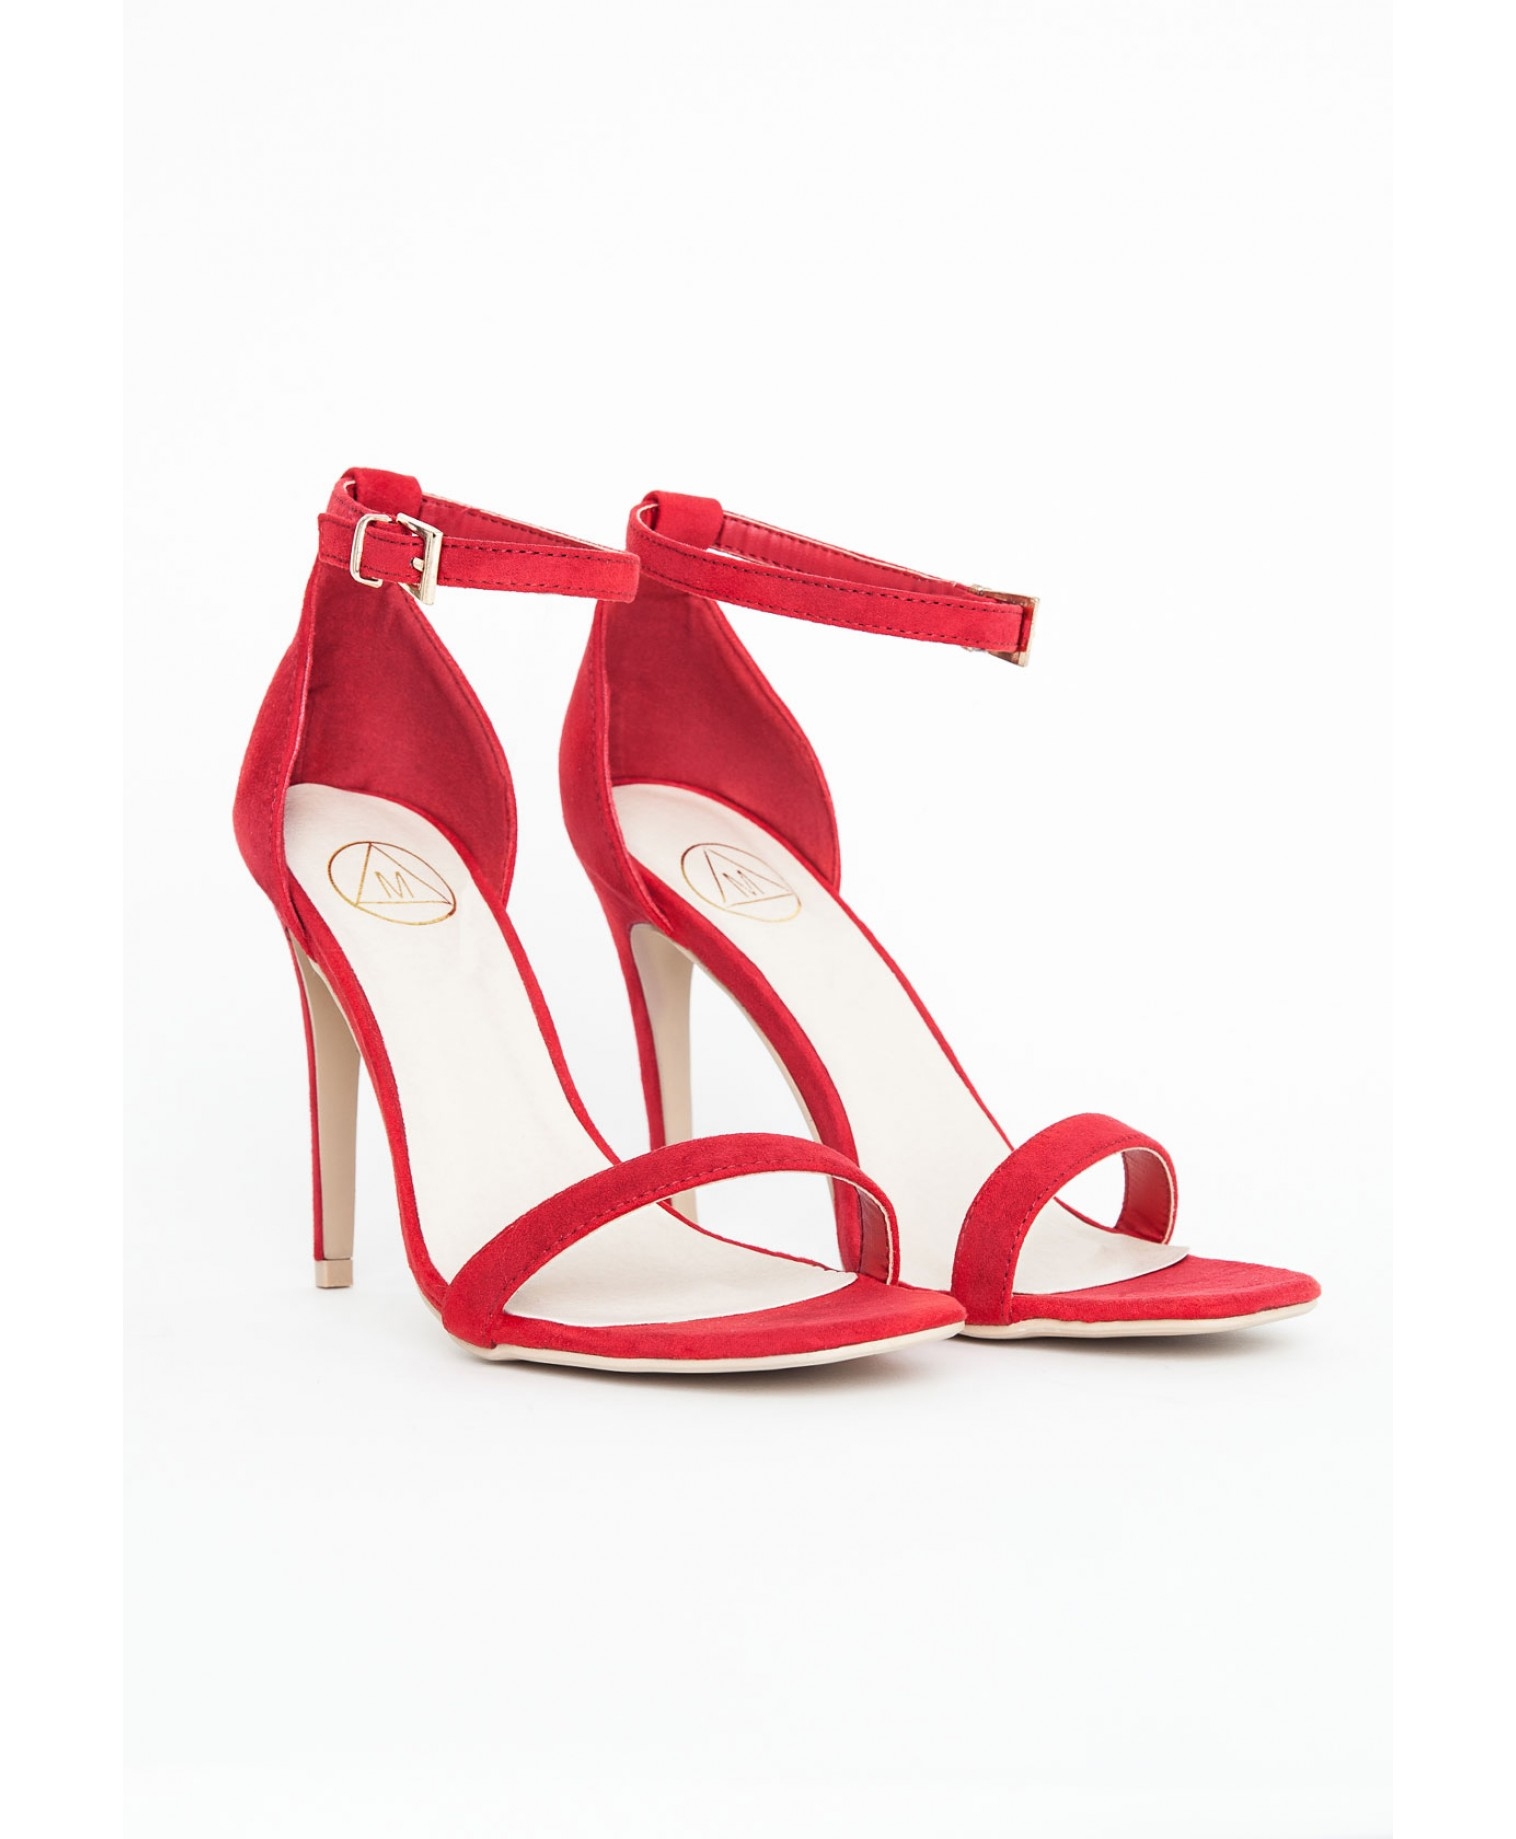 Red Strappy Sandals Heels - Is Heel